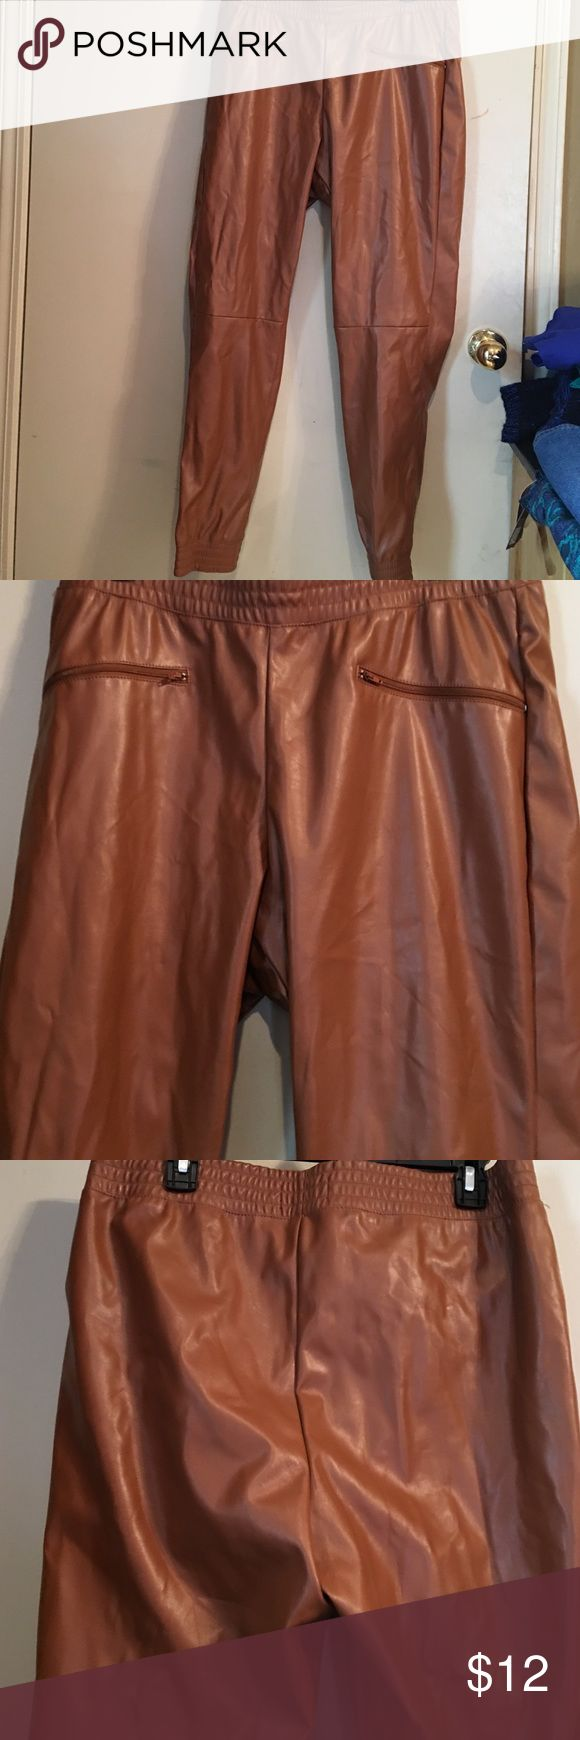 Joggers Size 1X faux leather brown jogger pants has faux zipper pockets in front made by Like an Angel Pants Trousers